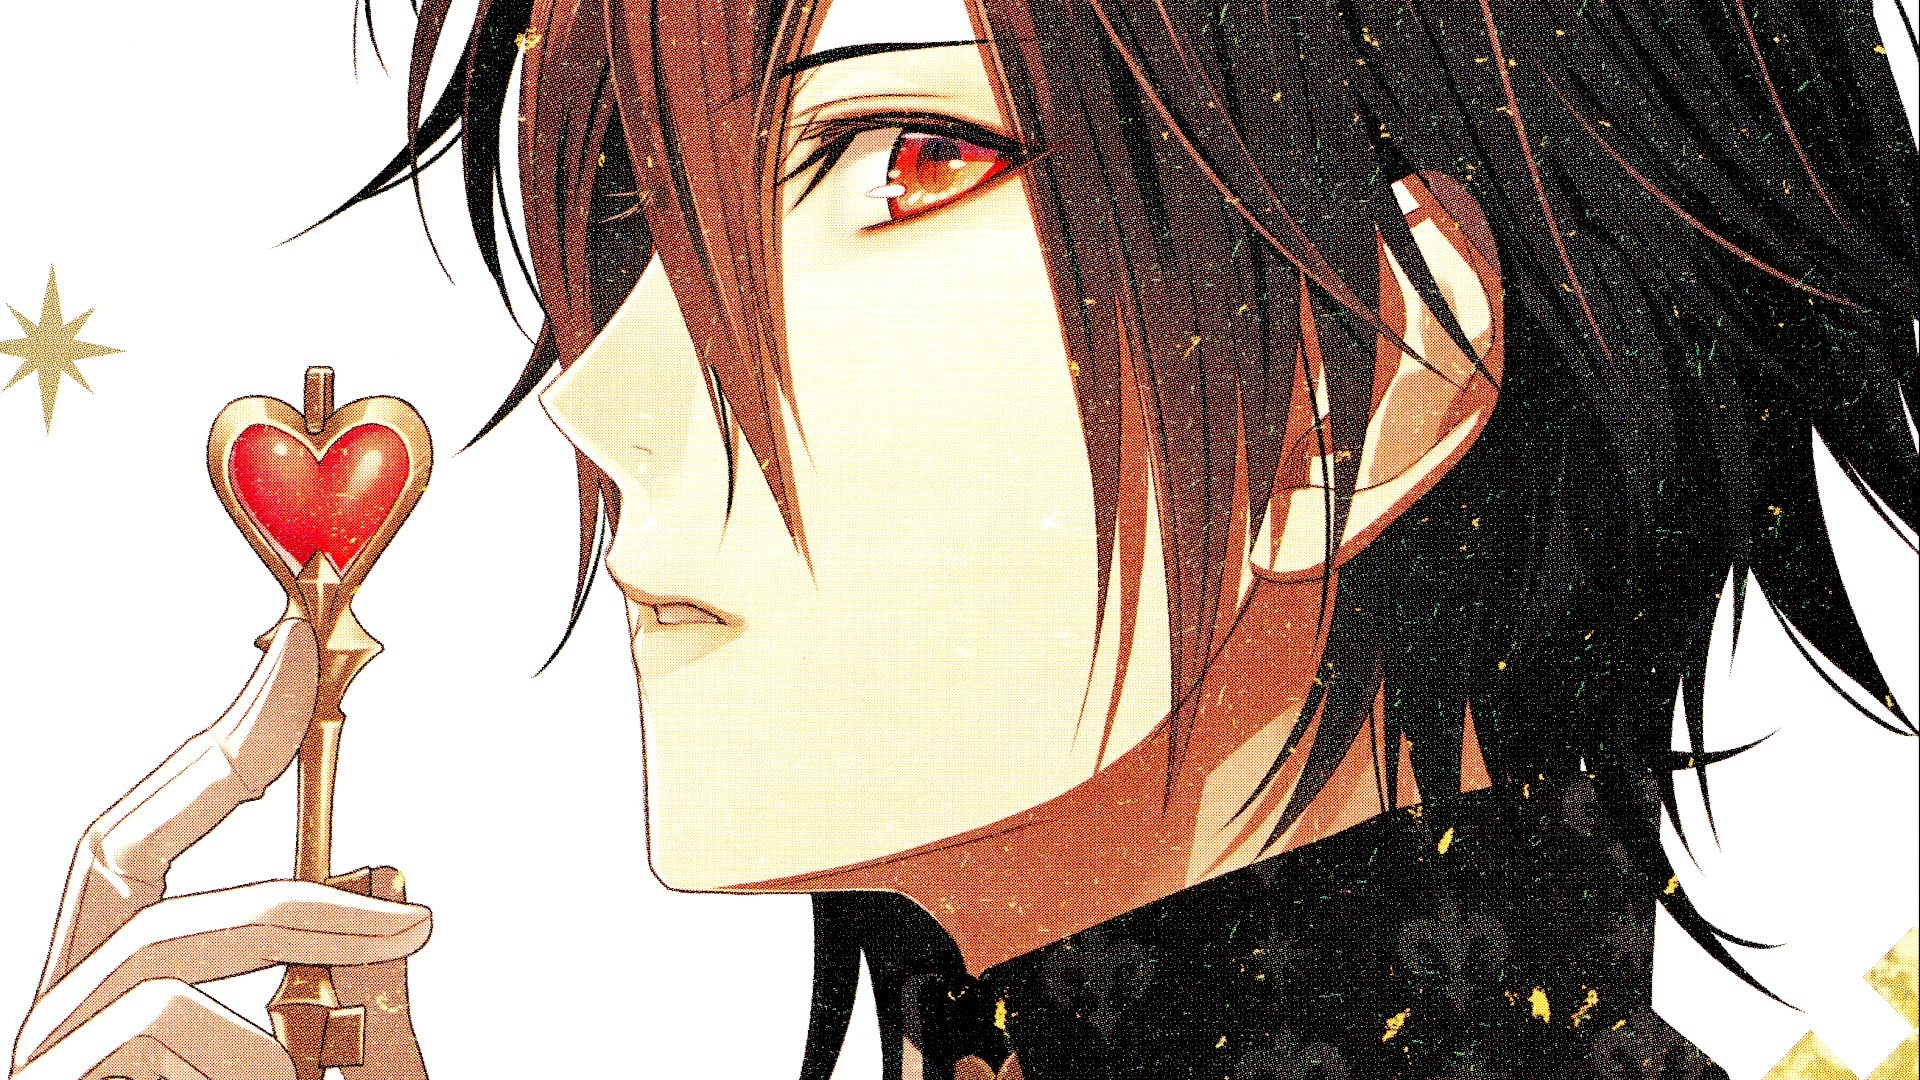 Anime Boy Bad Guy Hd Wallpapers Top Hottest Anime Boy 2044002 Hd Wallpaper Backgrounds Download